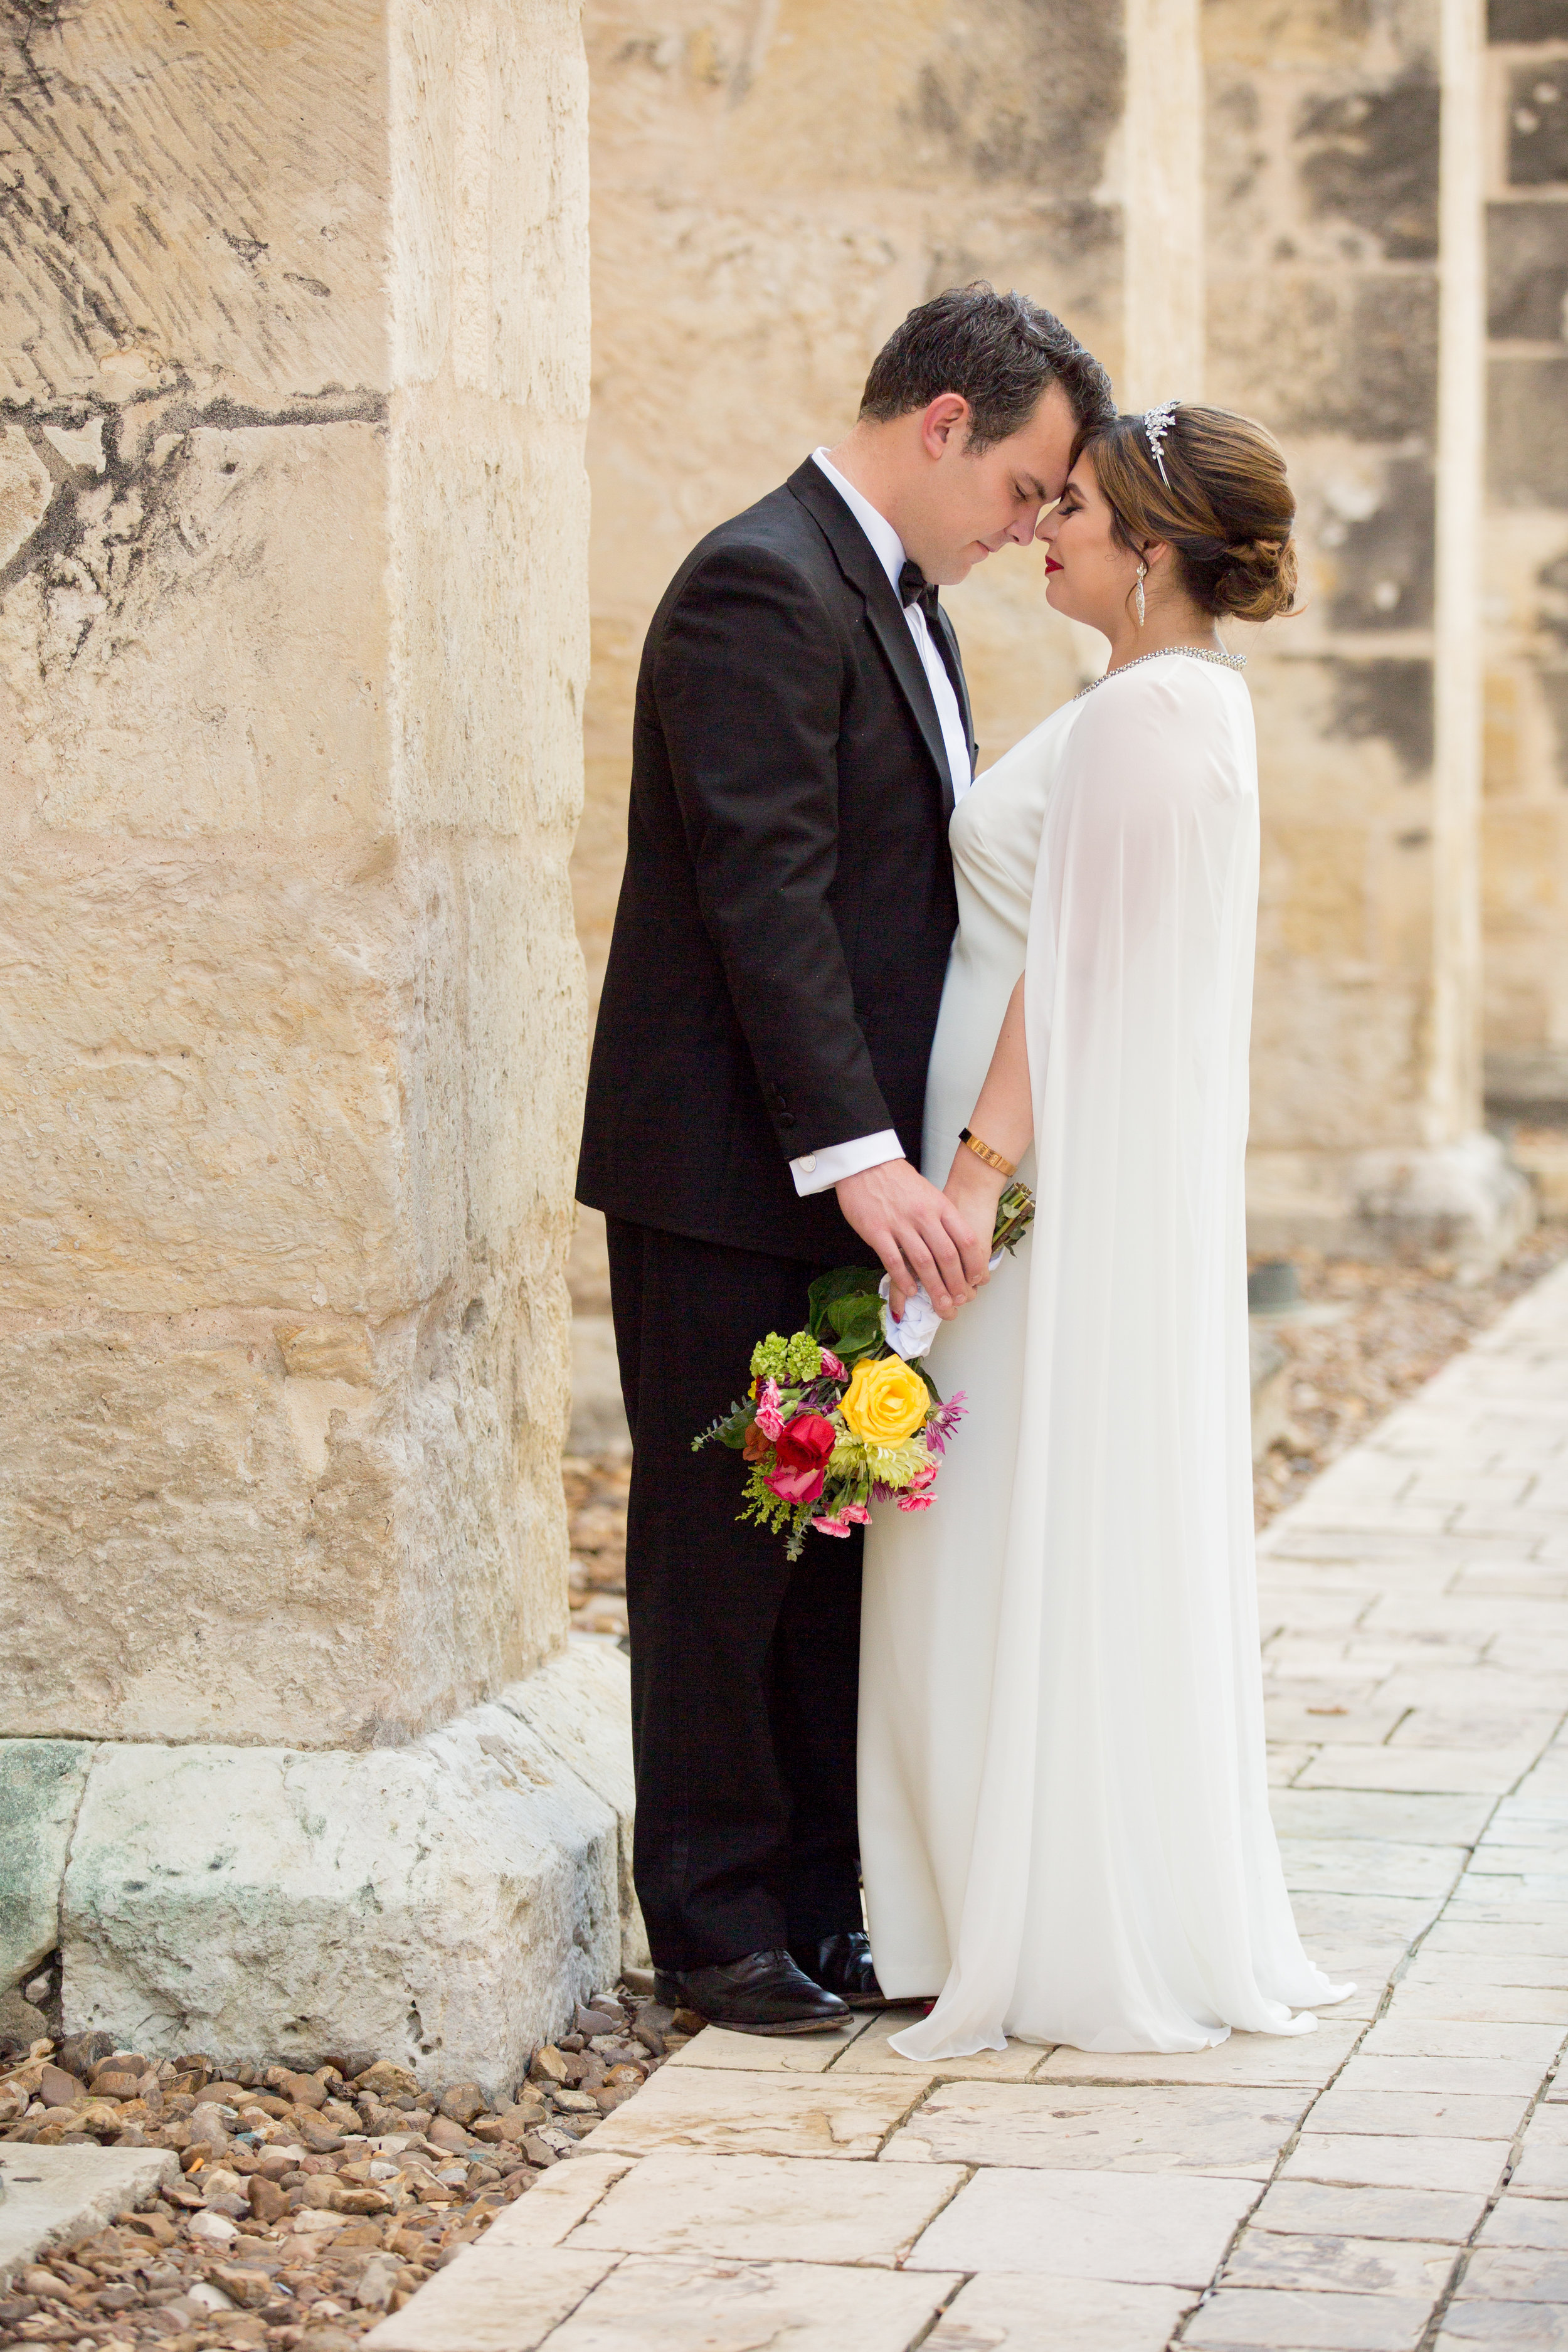 A private moment, captured by our amazing photographer, Aria Productions. Taking in the newlywed moment.